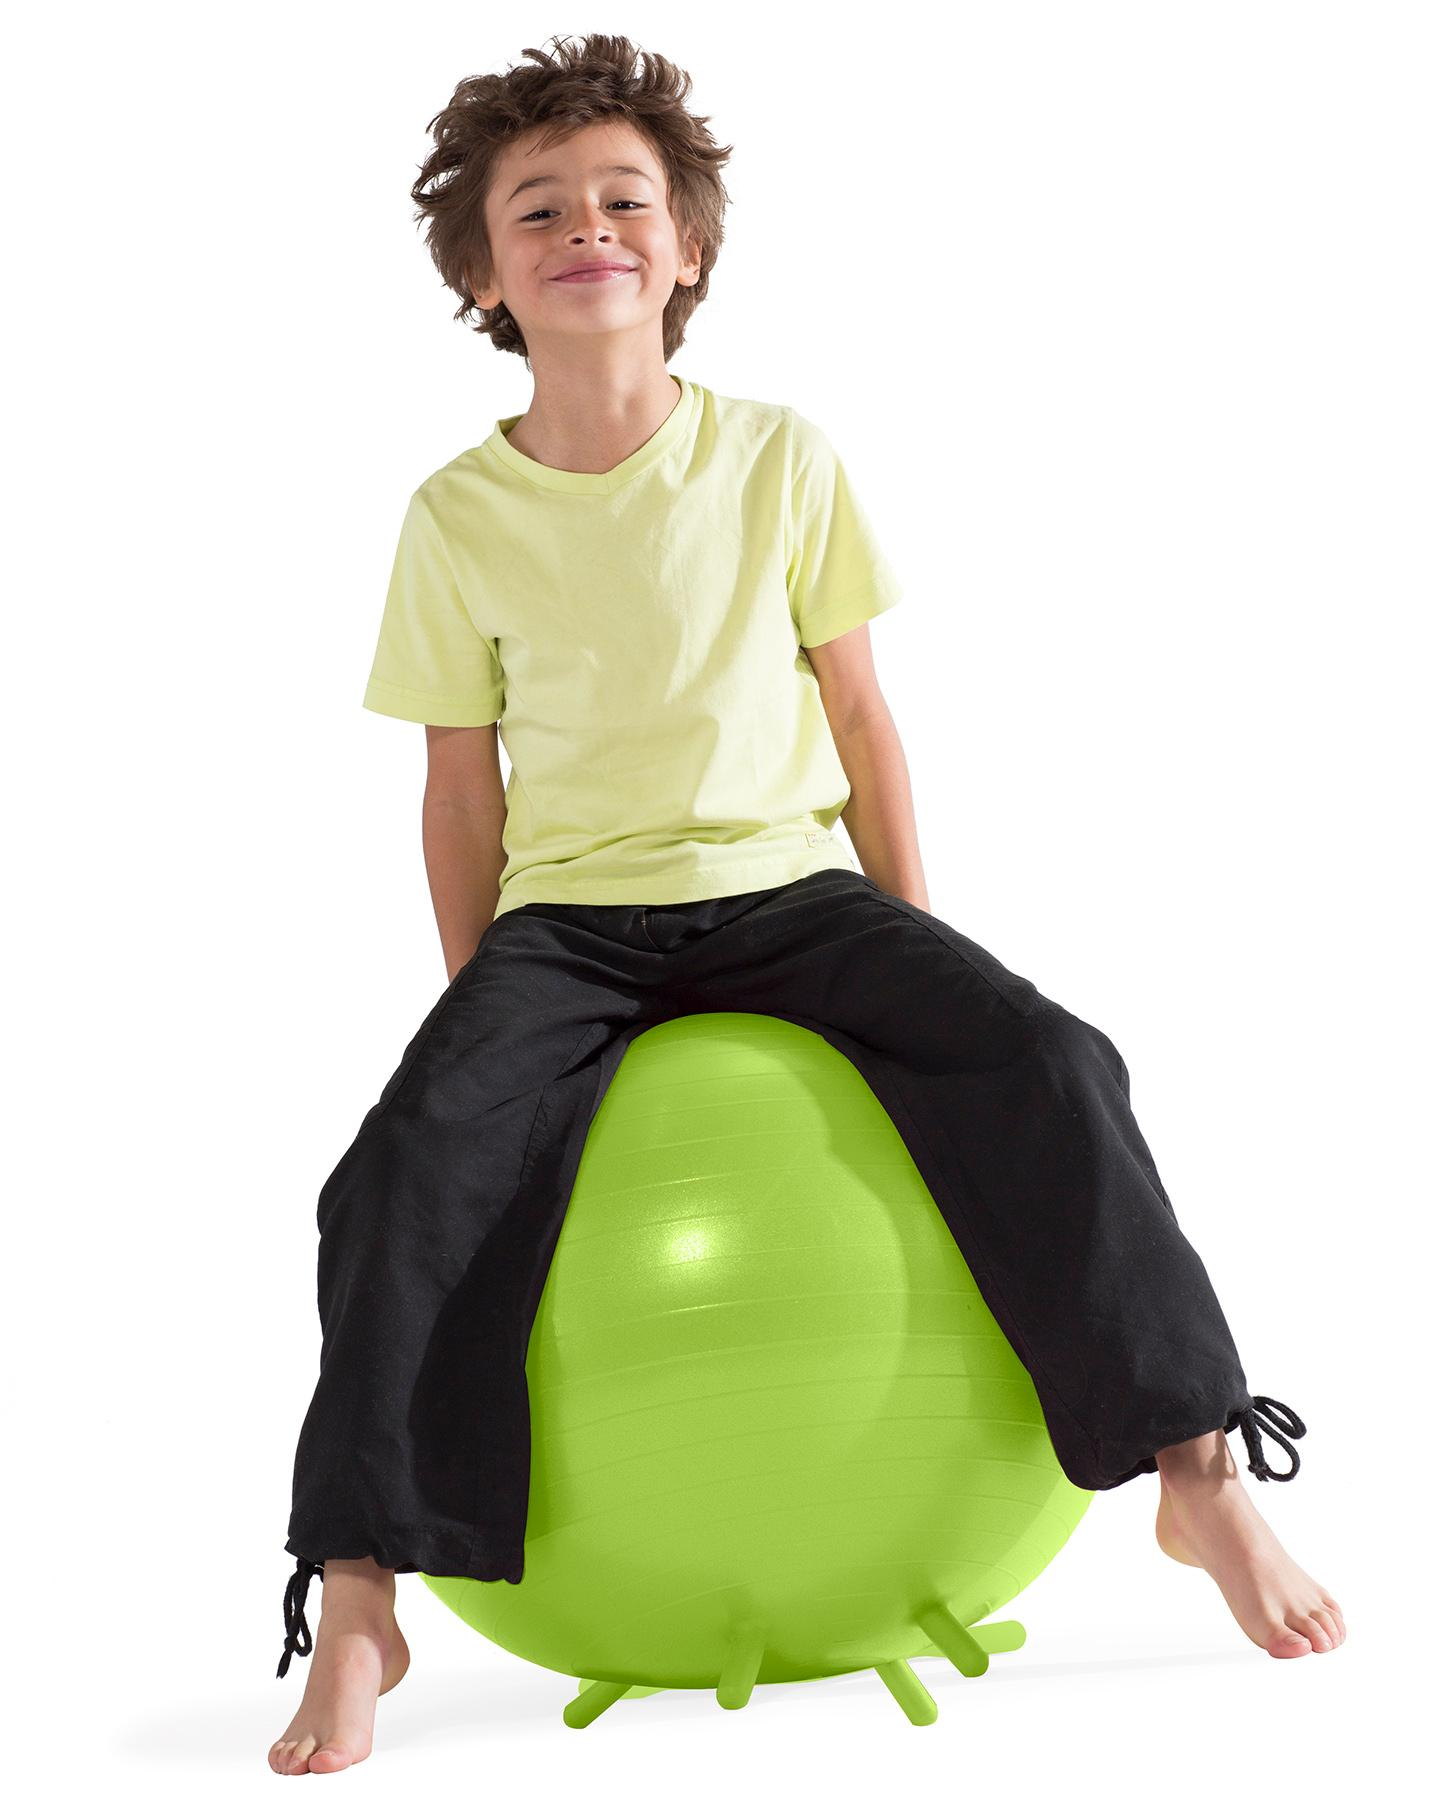 kids balance ball chair office gray amazon gaiam stay n play lime